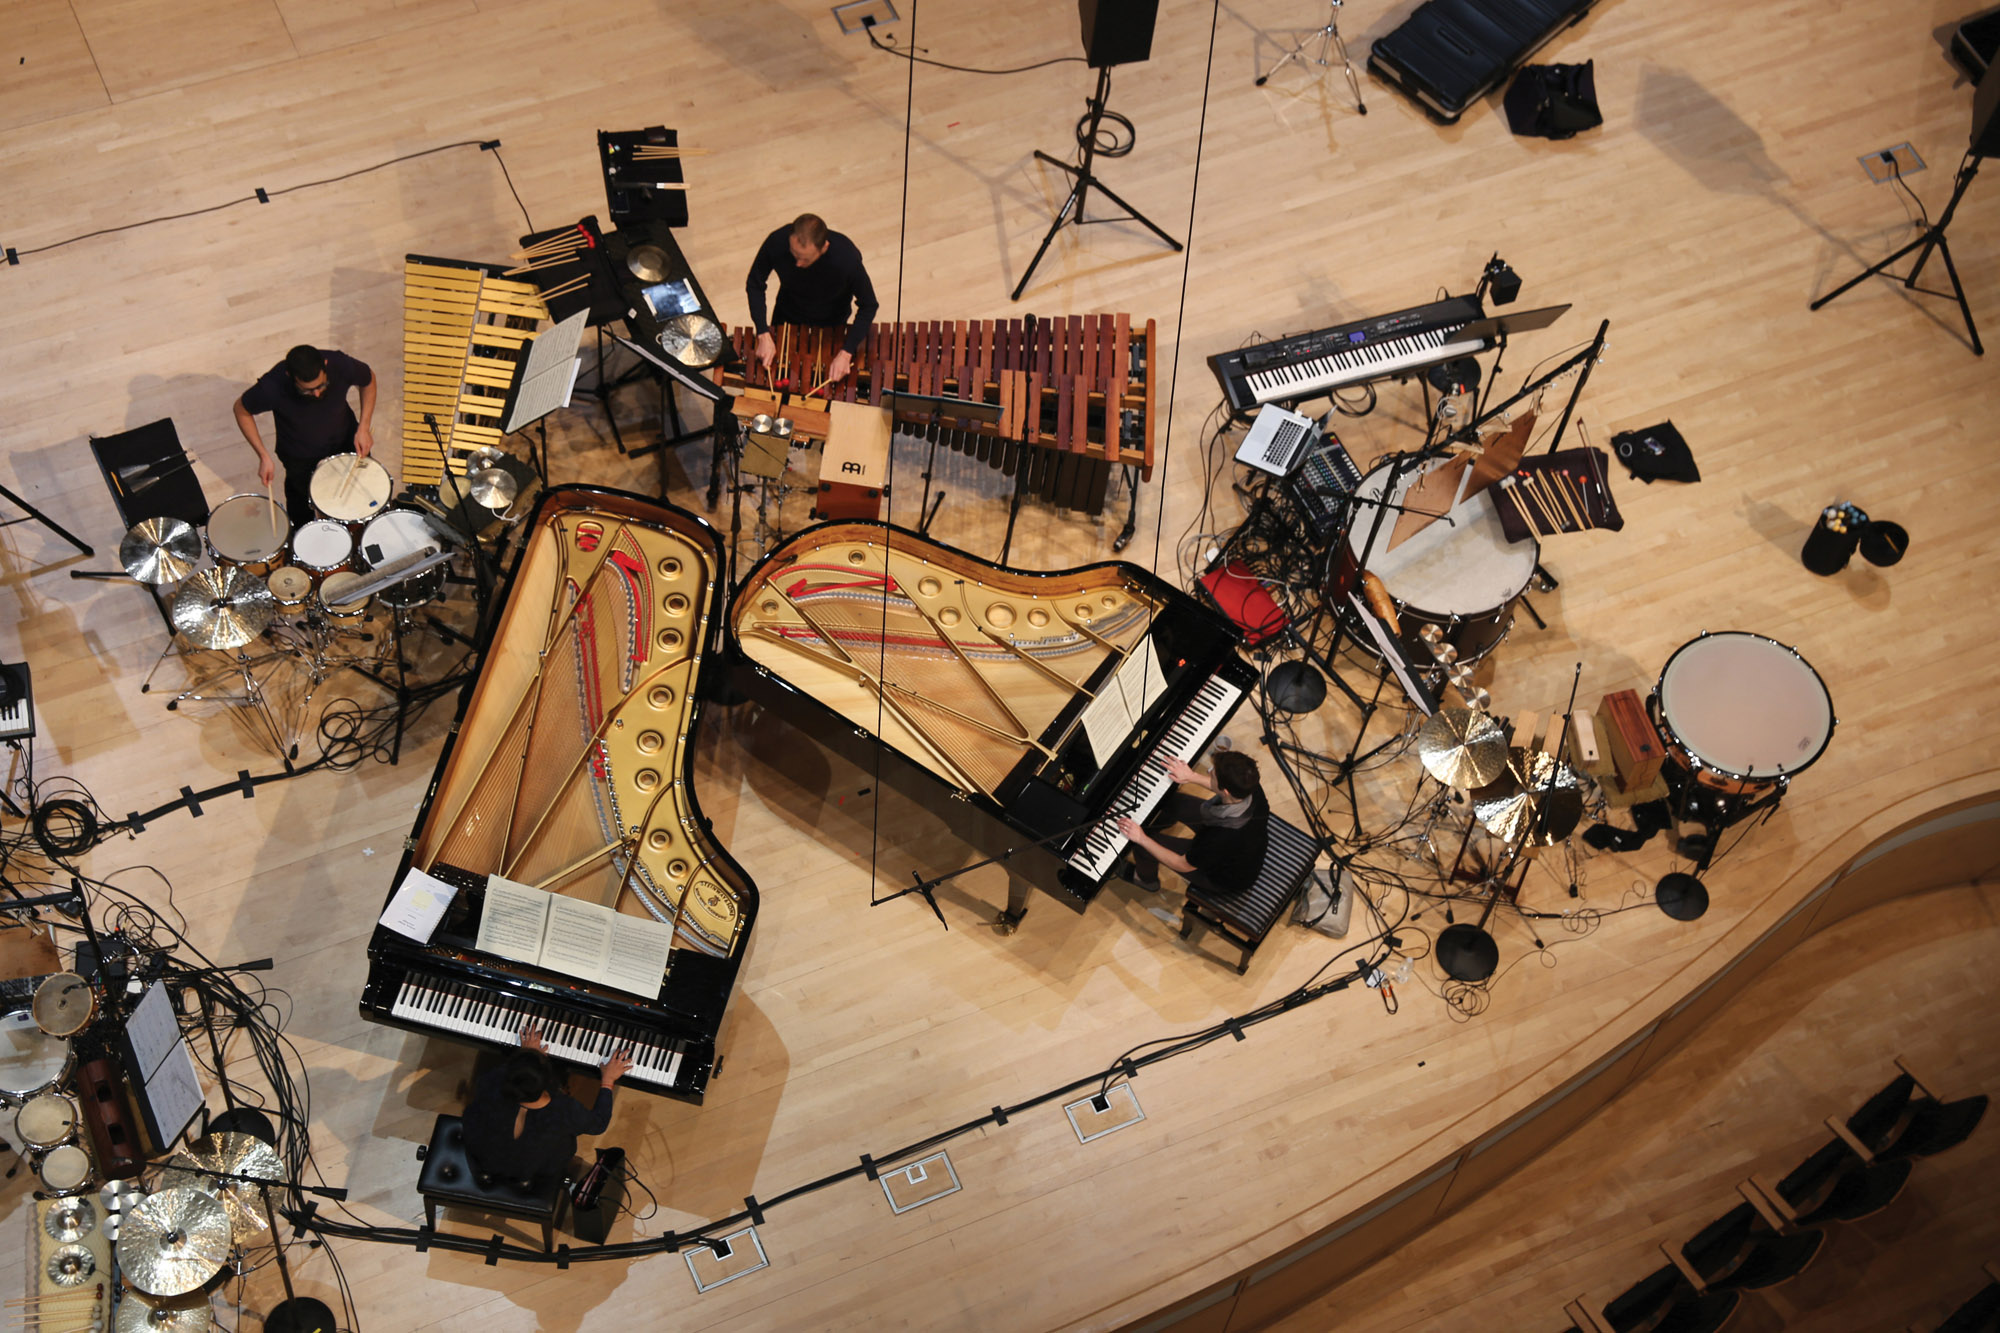 two pianos as viewed from directly above the concert hall stage.